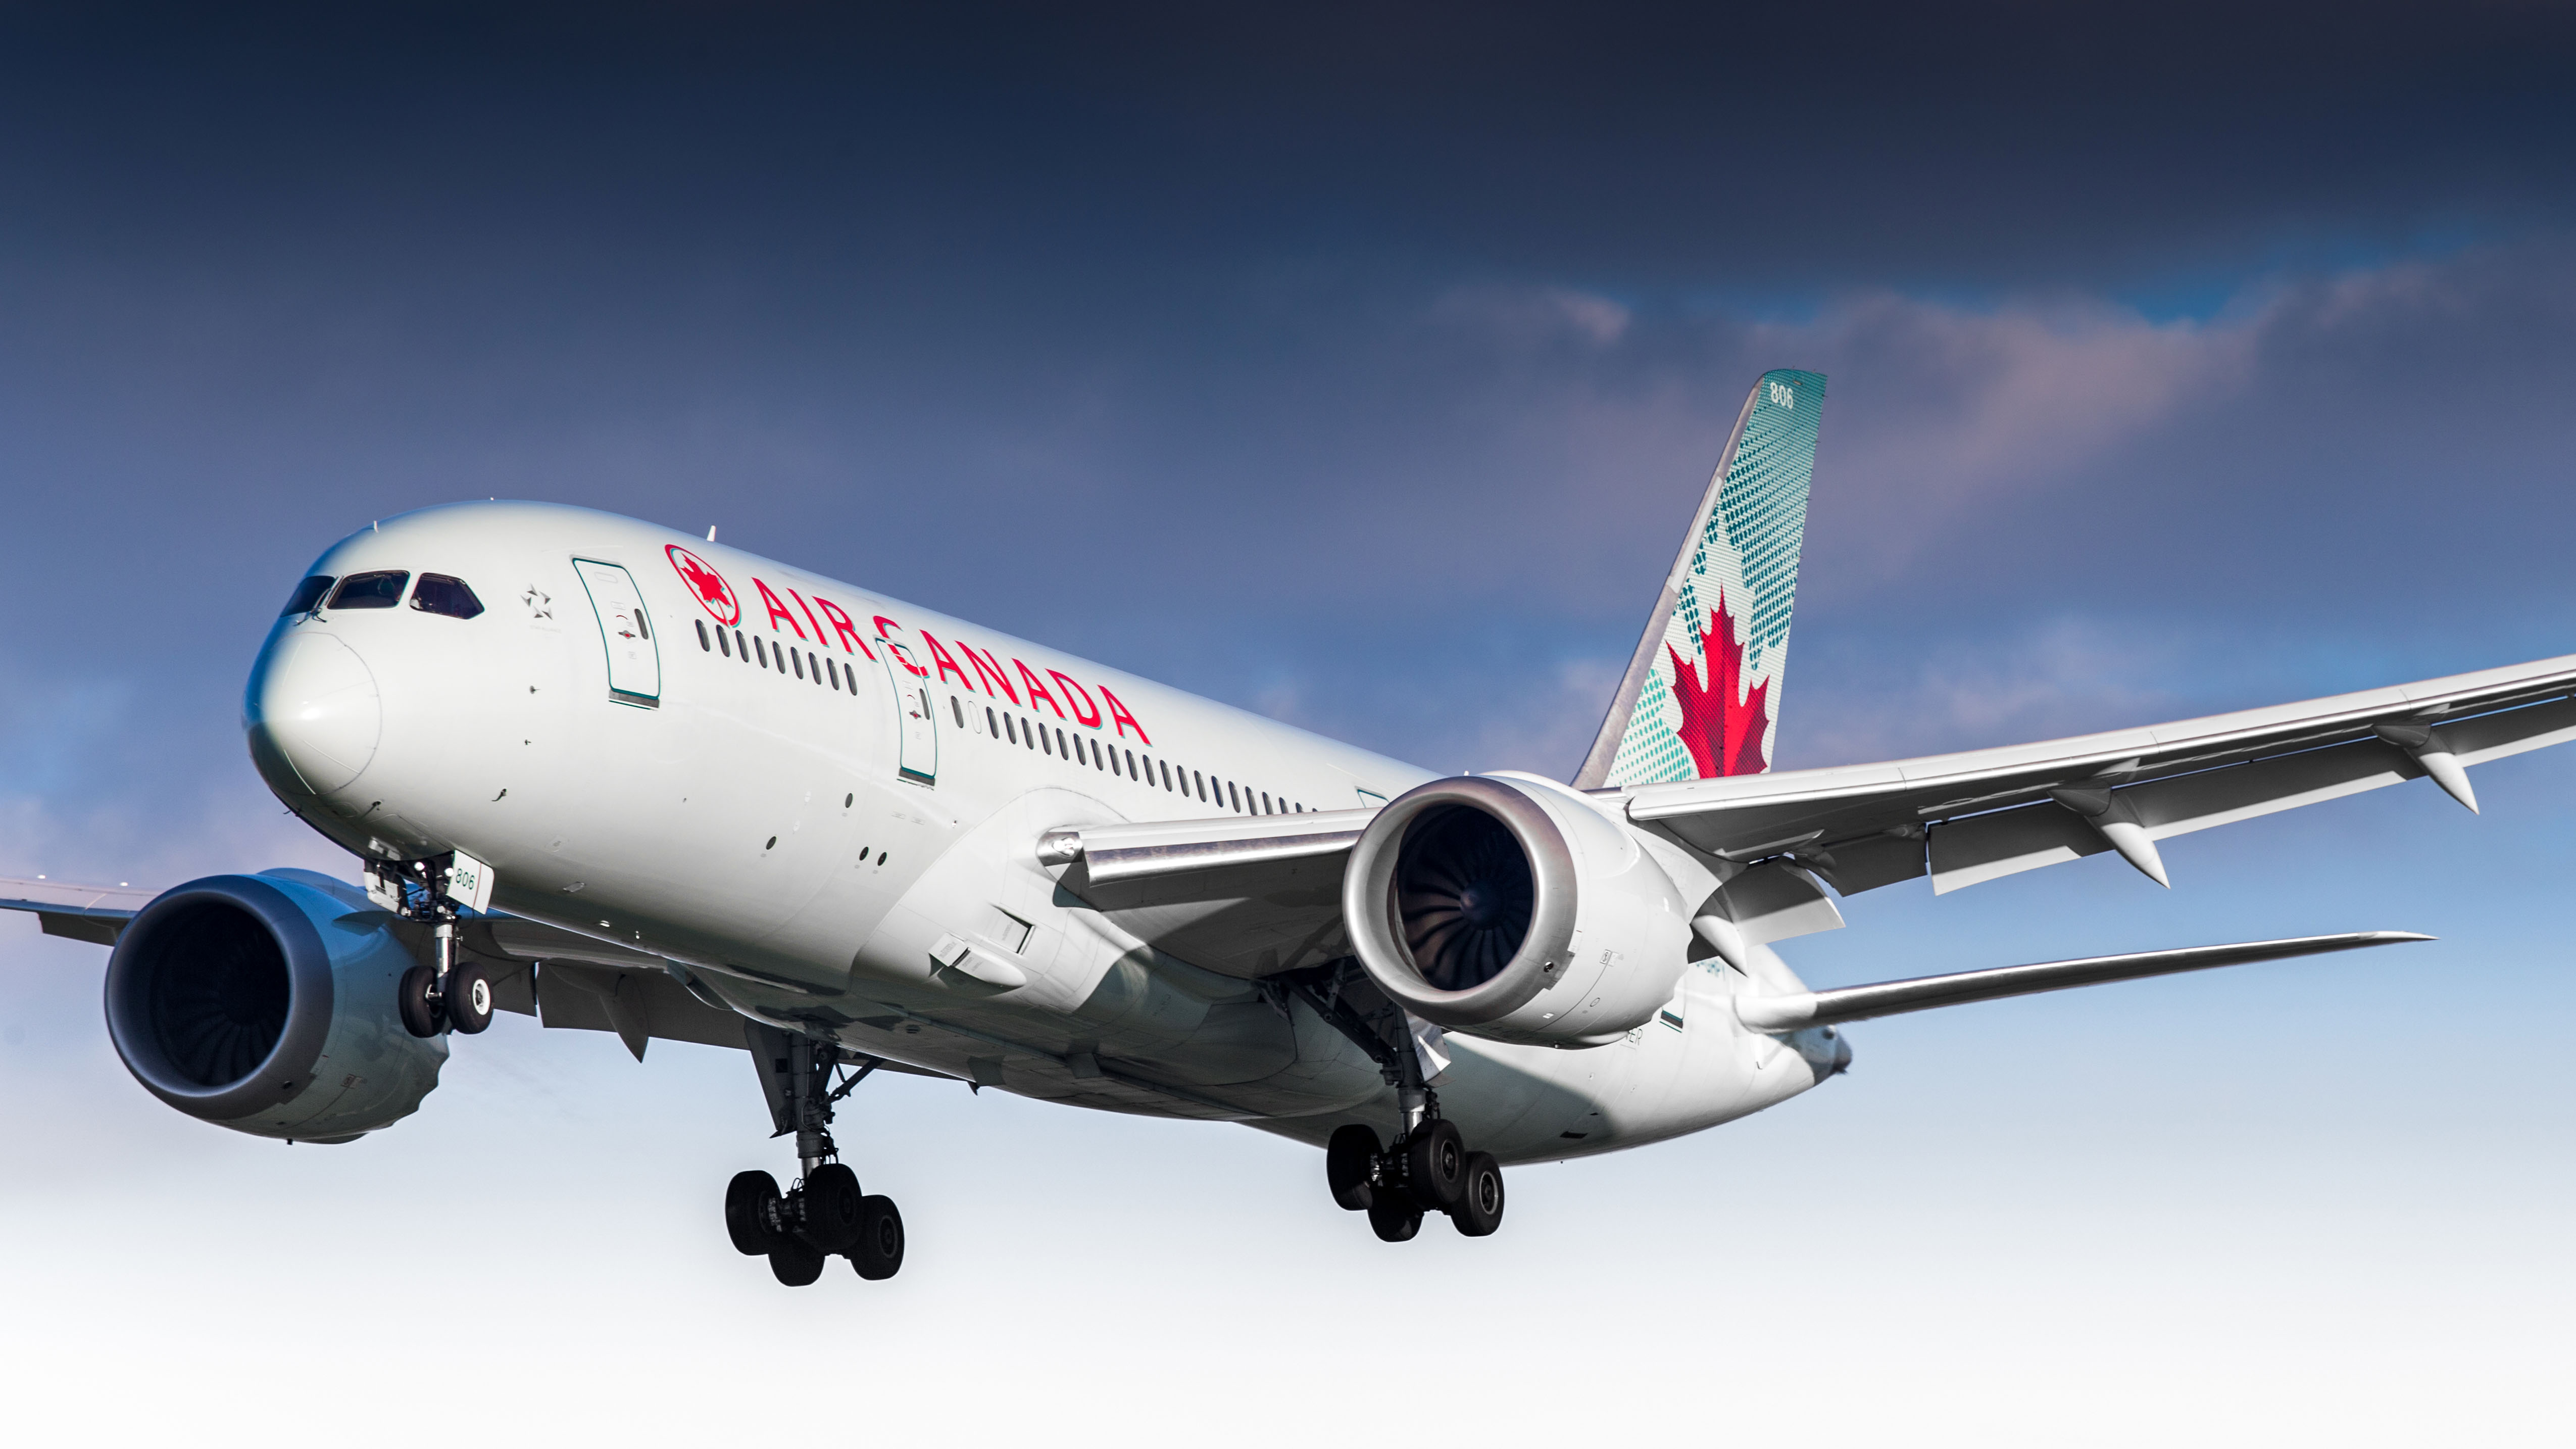 Air Canada flight forced to divert after windshield crack noticed midflight